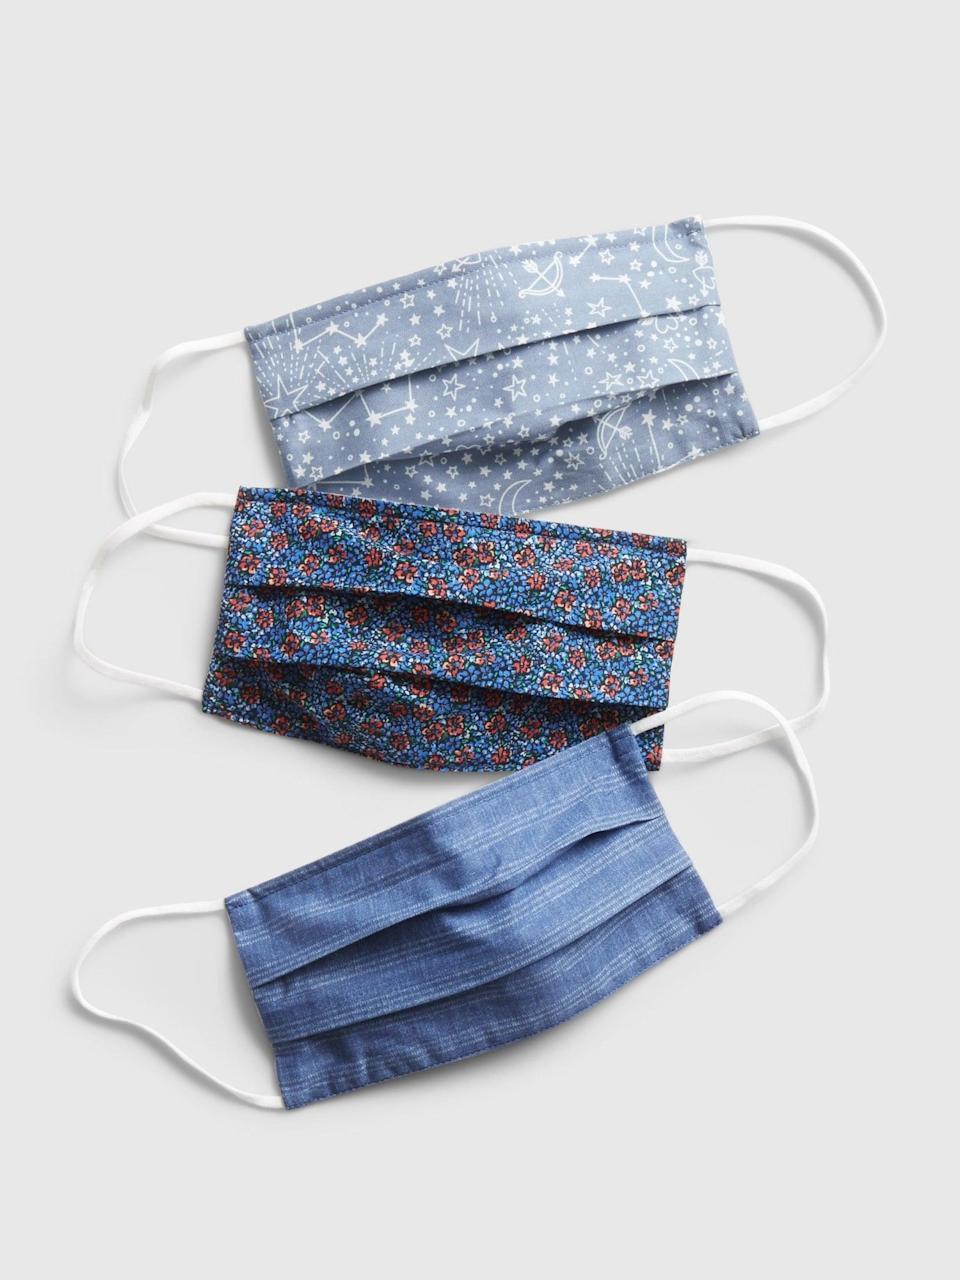 <p>Reach for the stars with <span>this three-pack of face masks</span> ($15) from Gap. These triple-layered masks include one blue striped pattern, one autumn-colored floral print, and one light gray mask covered in tiny pictures of the constellations.</p>